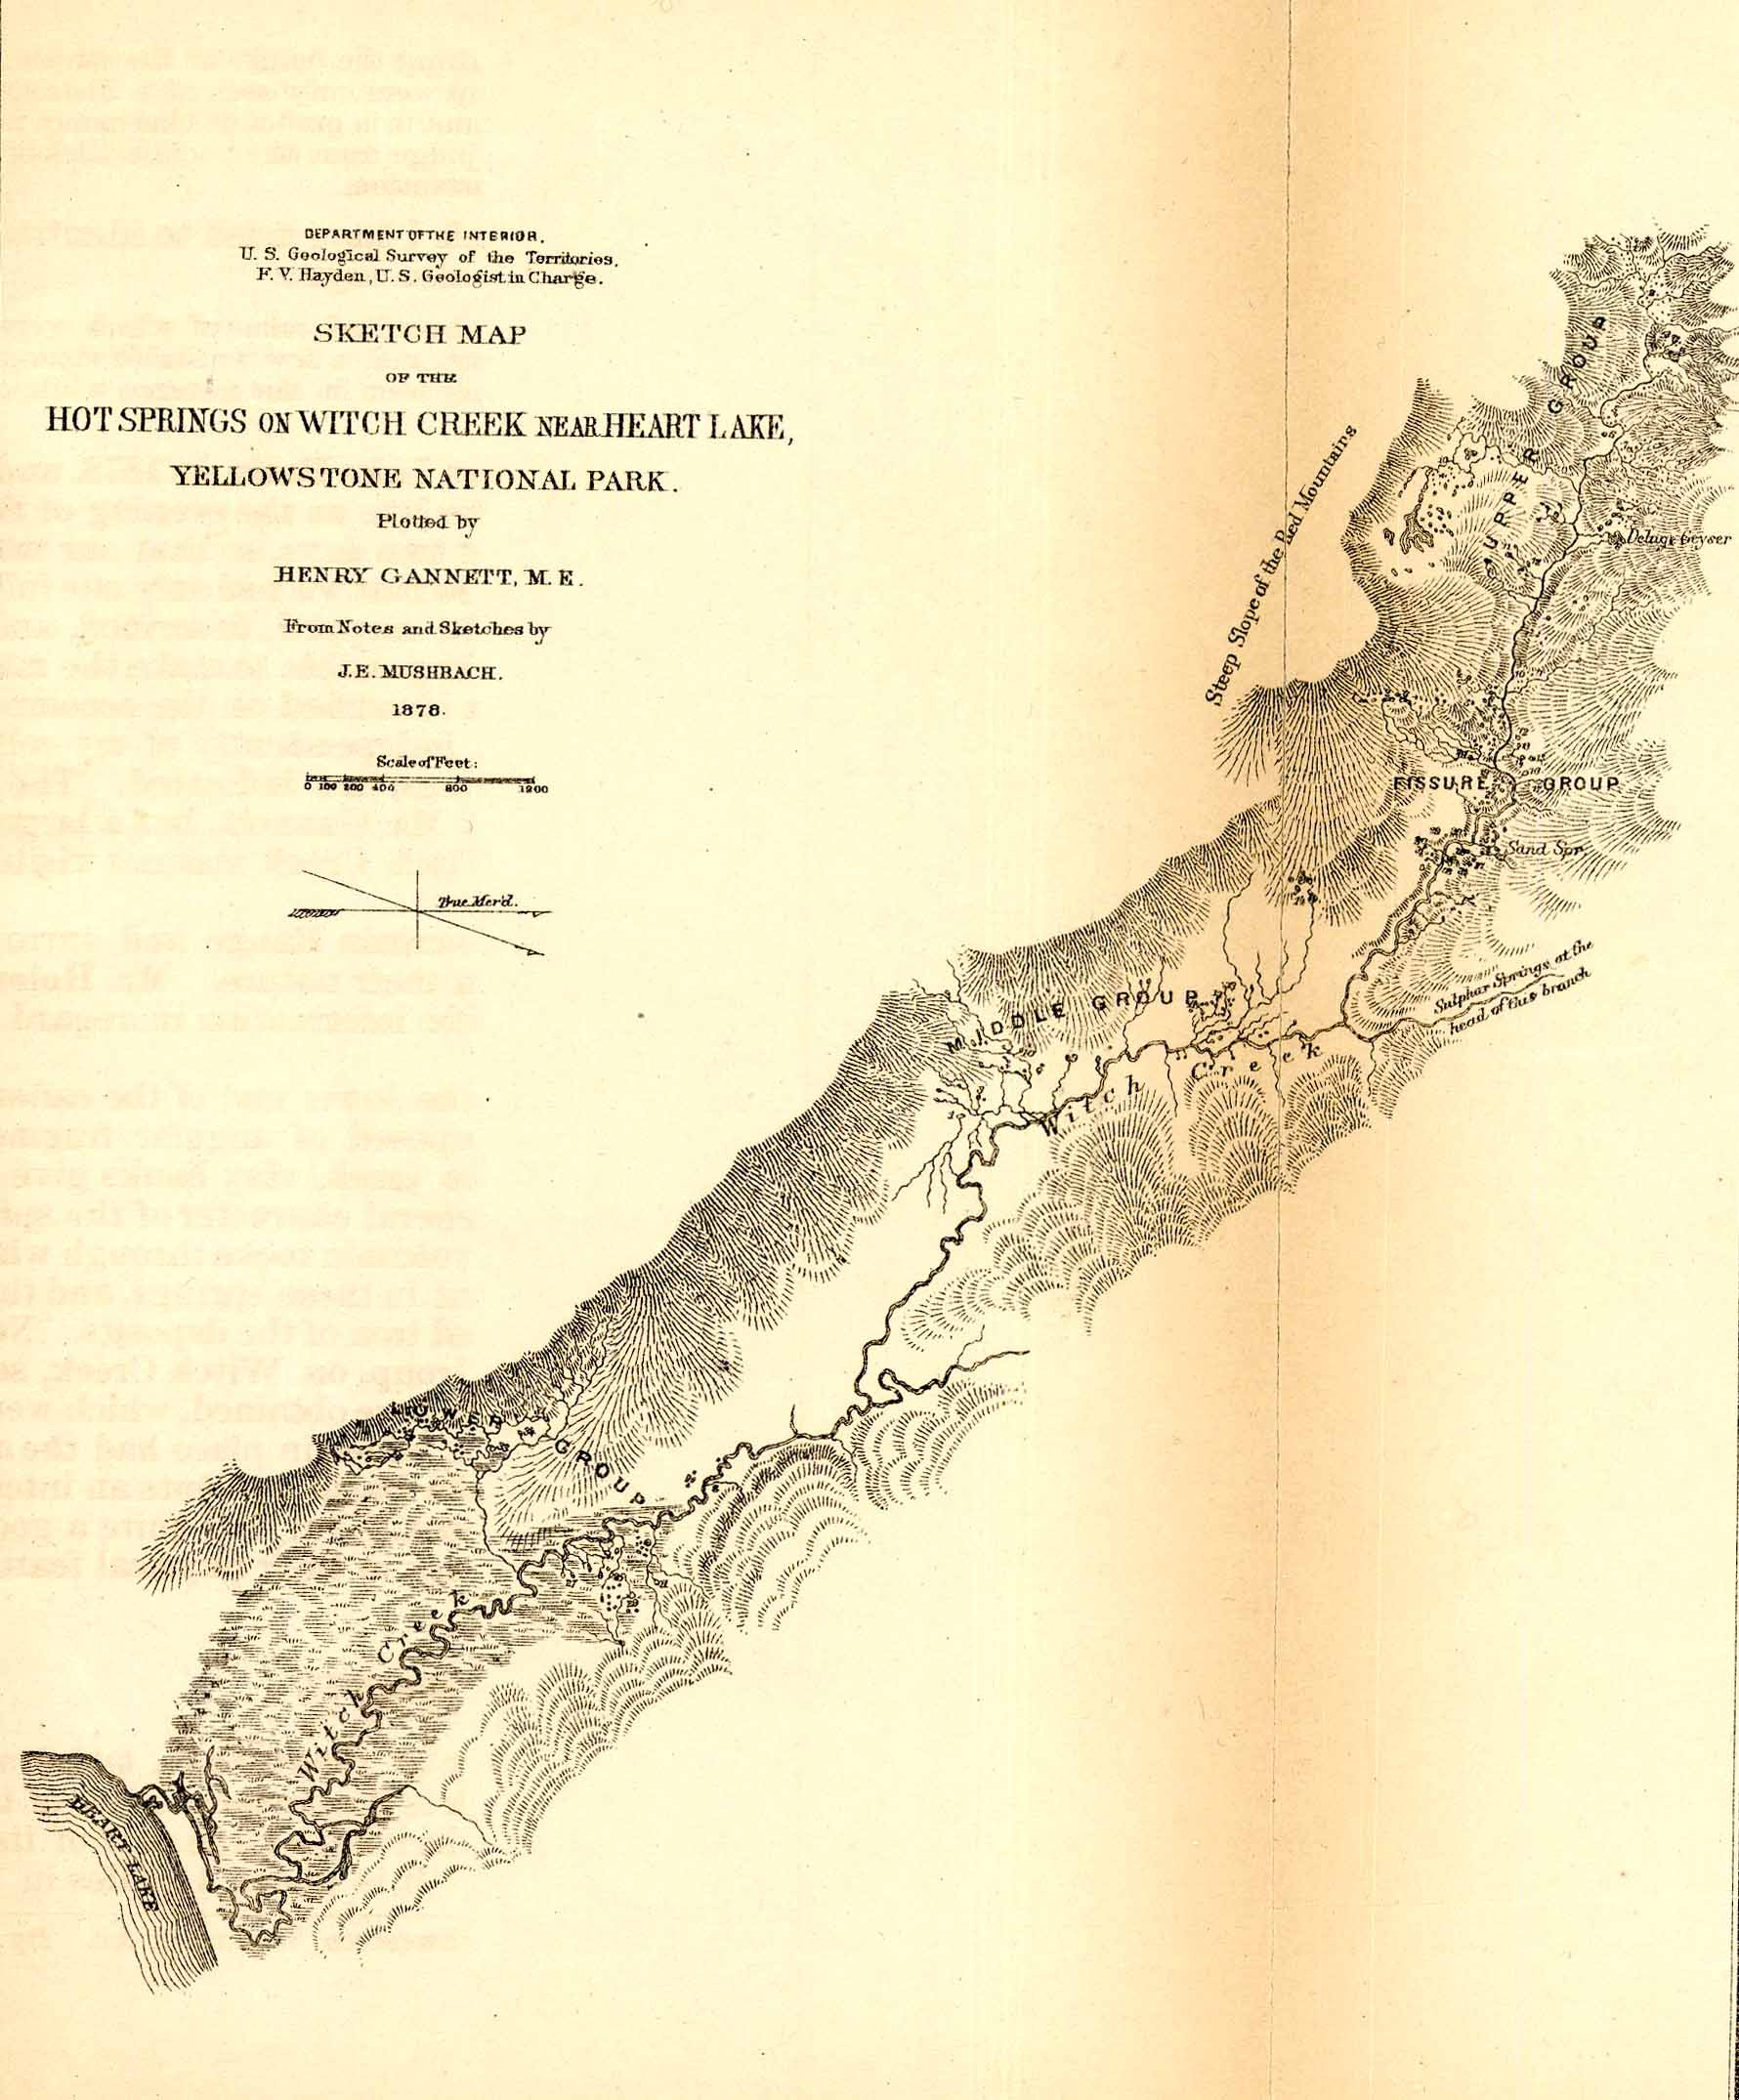 Map of Witch Creek with information about the area